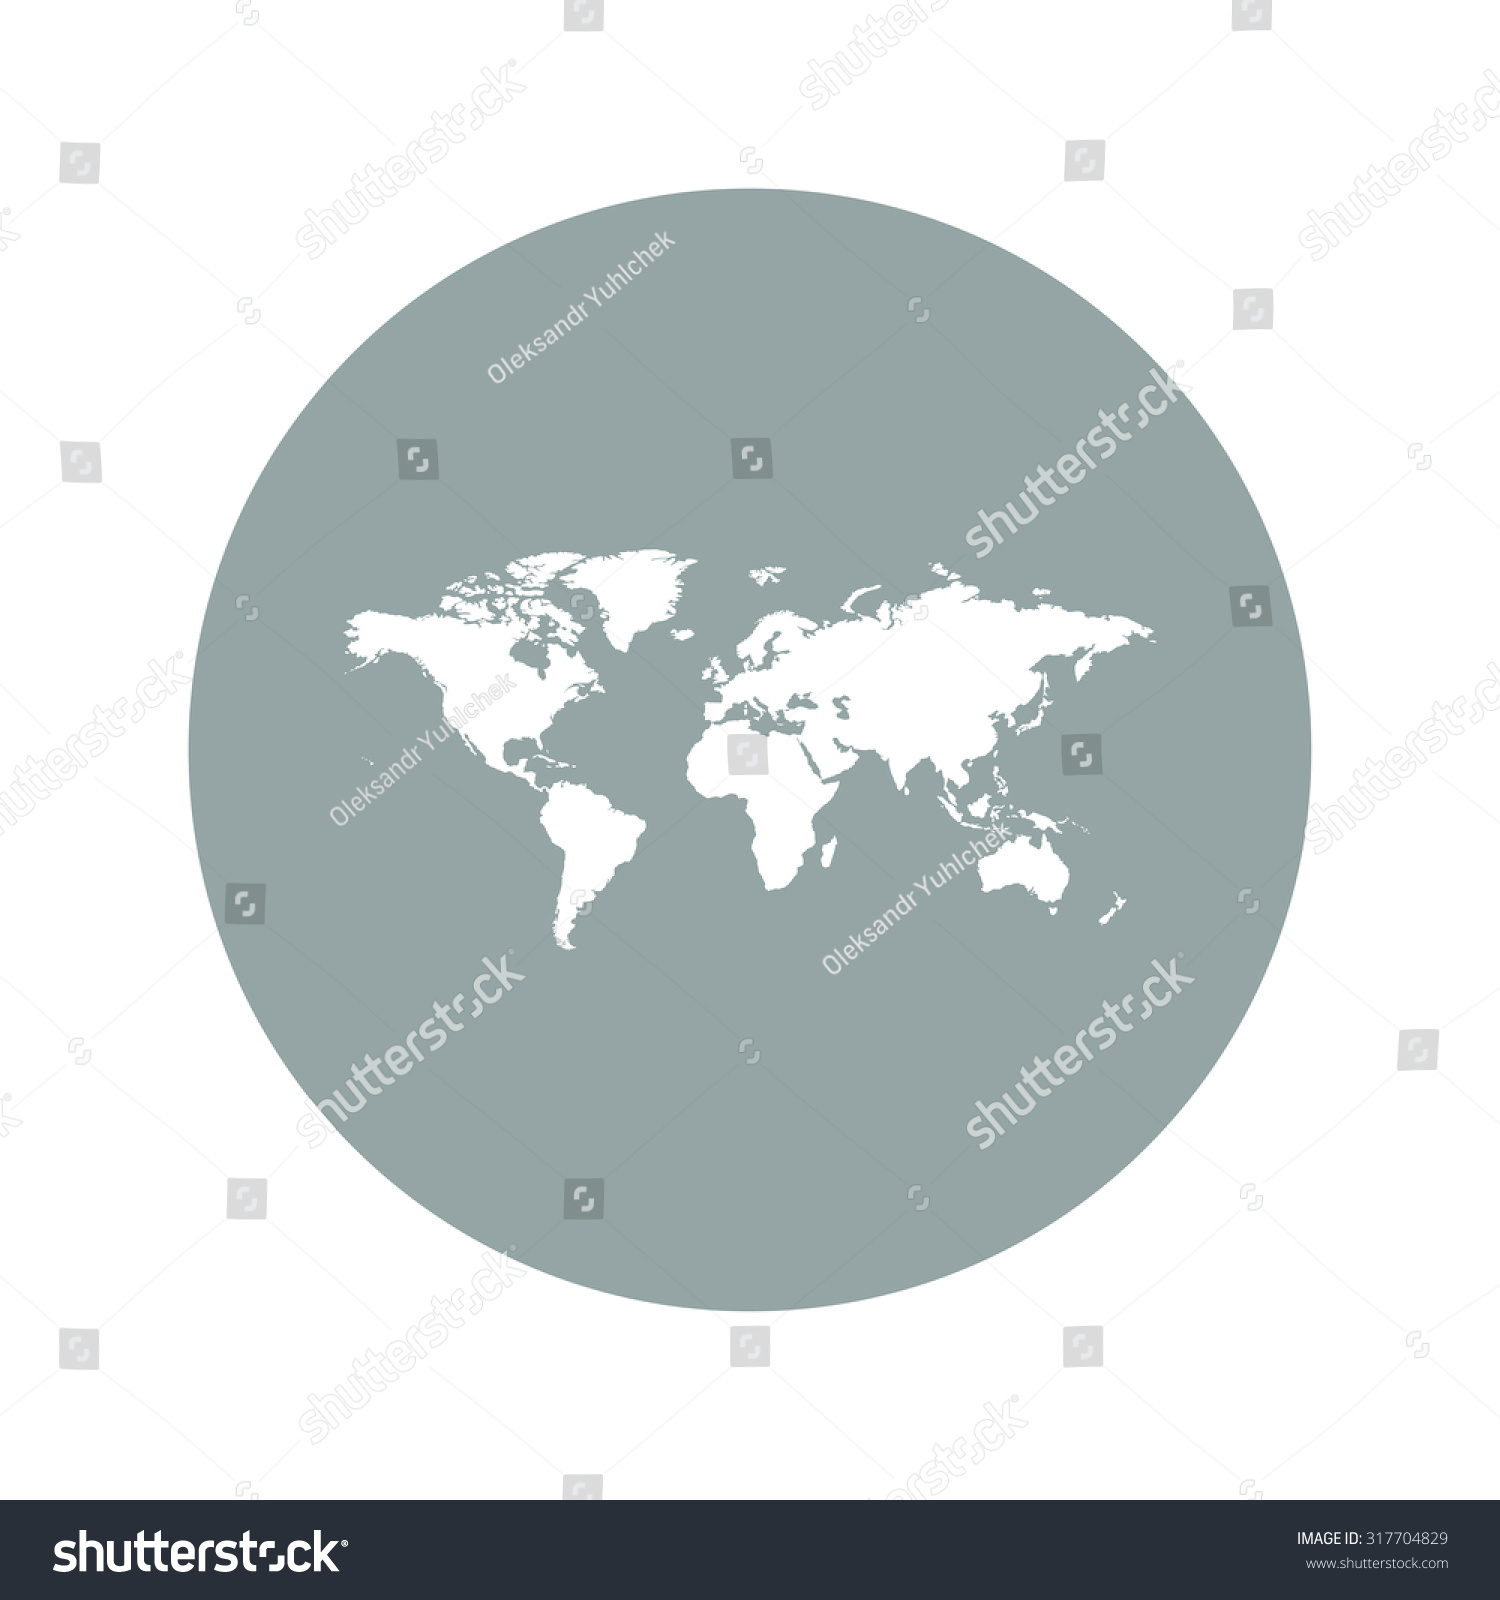 World map illustration flat design style stock vector 317704829 world map illustration flat design style eps 10 gumiabroncs Images